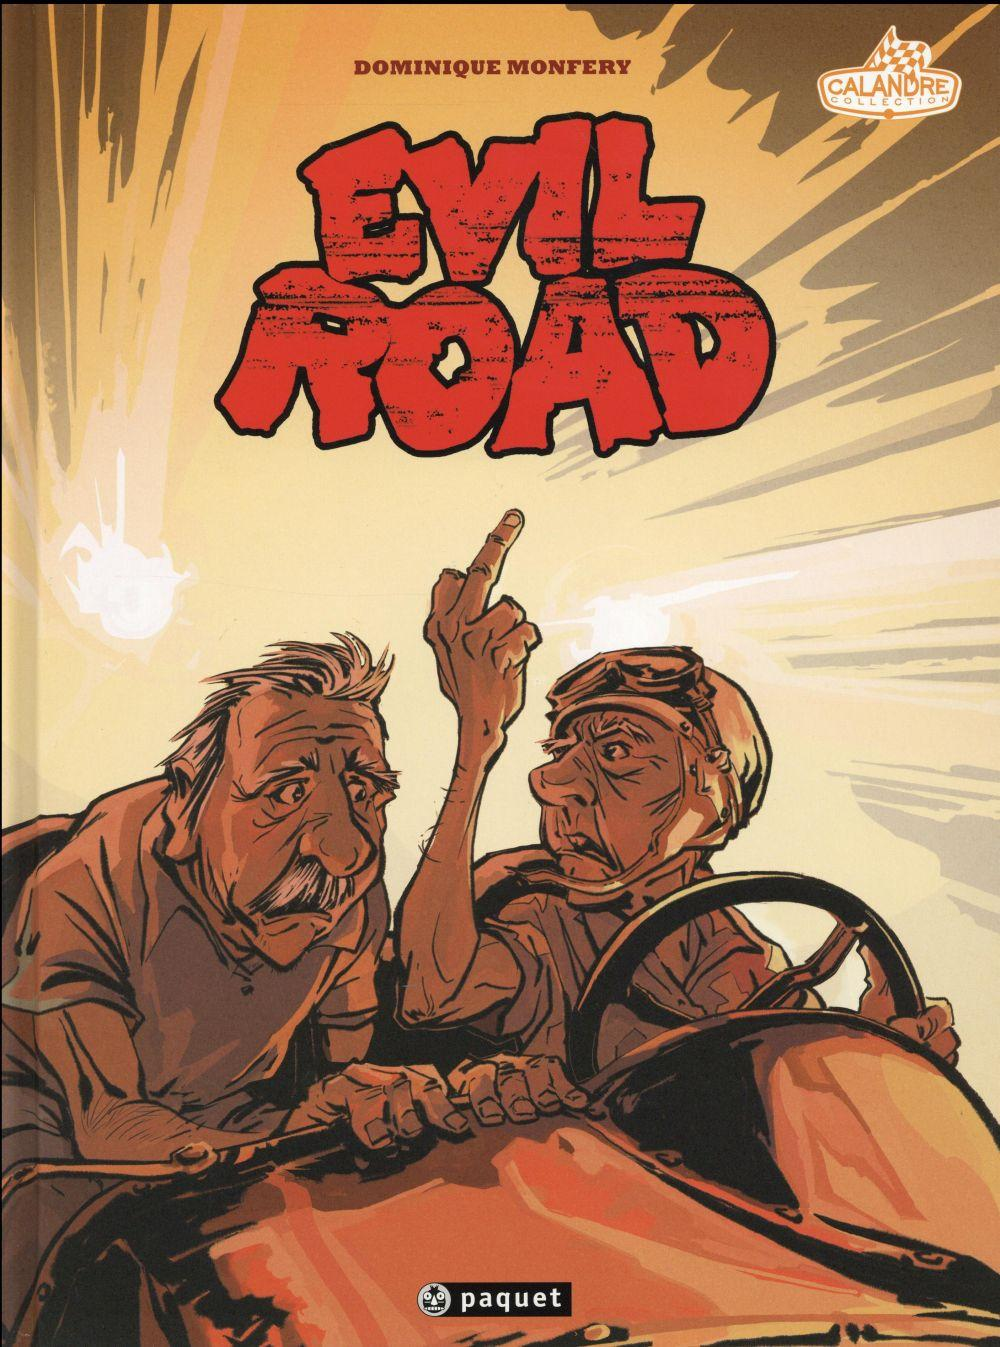 Evil road  - Dominique Monfery